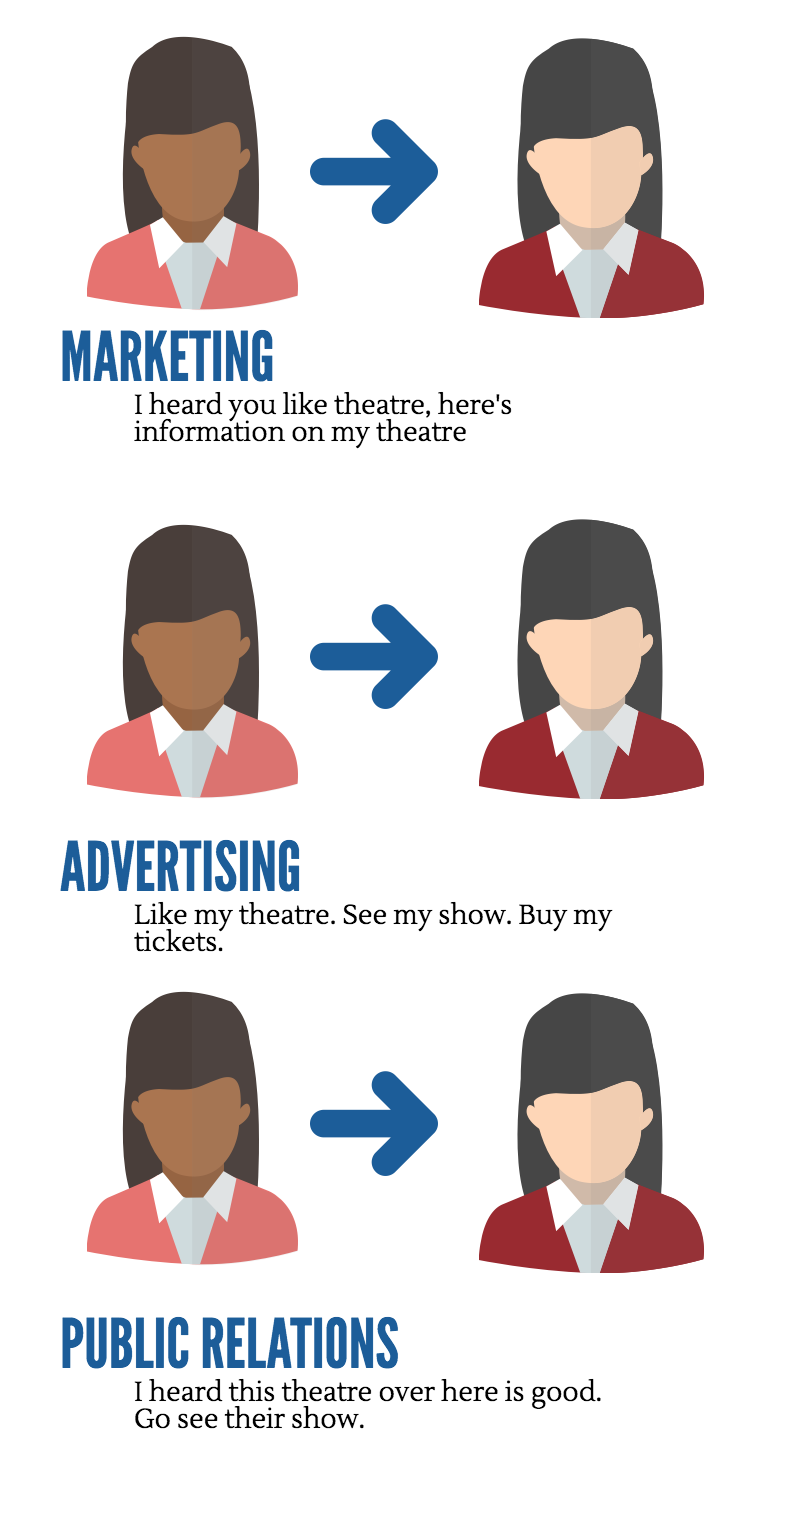 A simple breakdown of the different types of communication a brand can have with their audience.